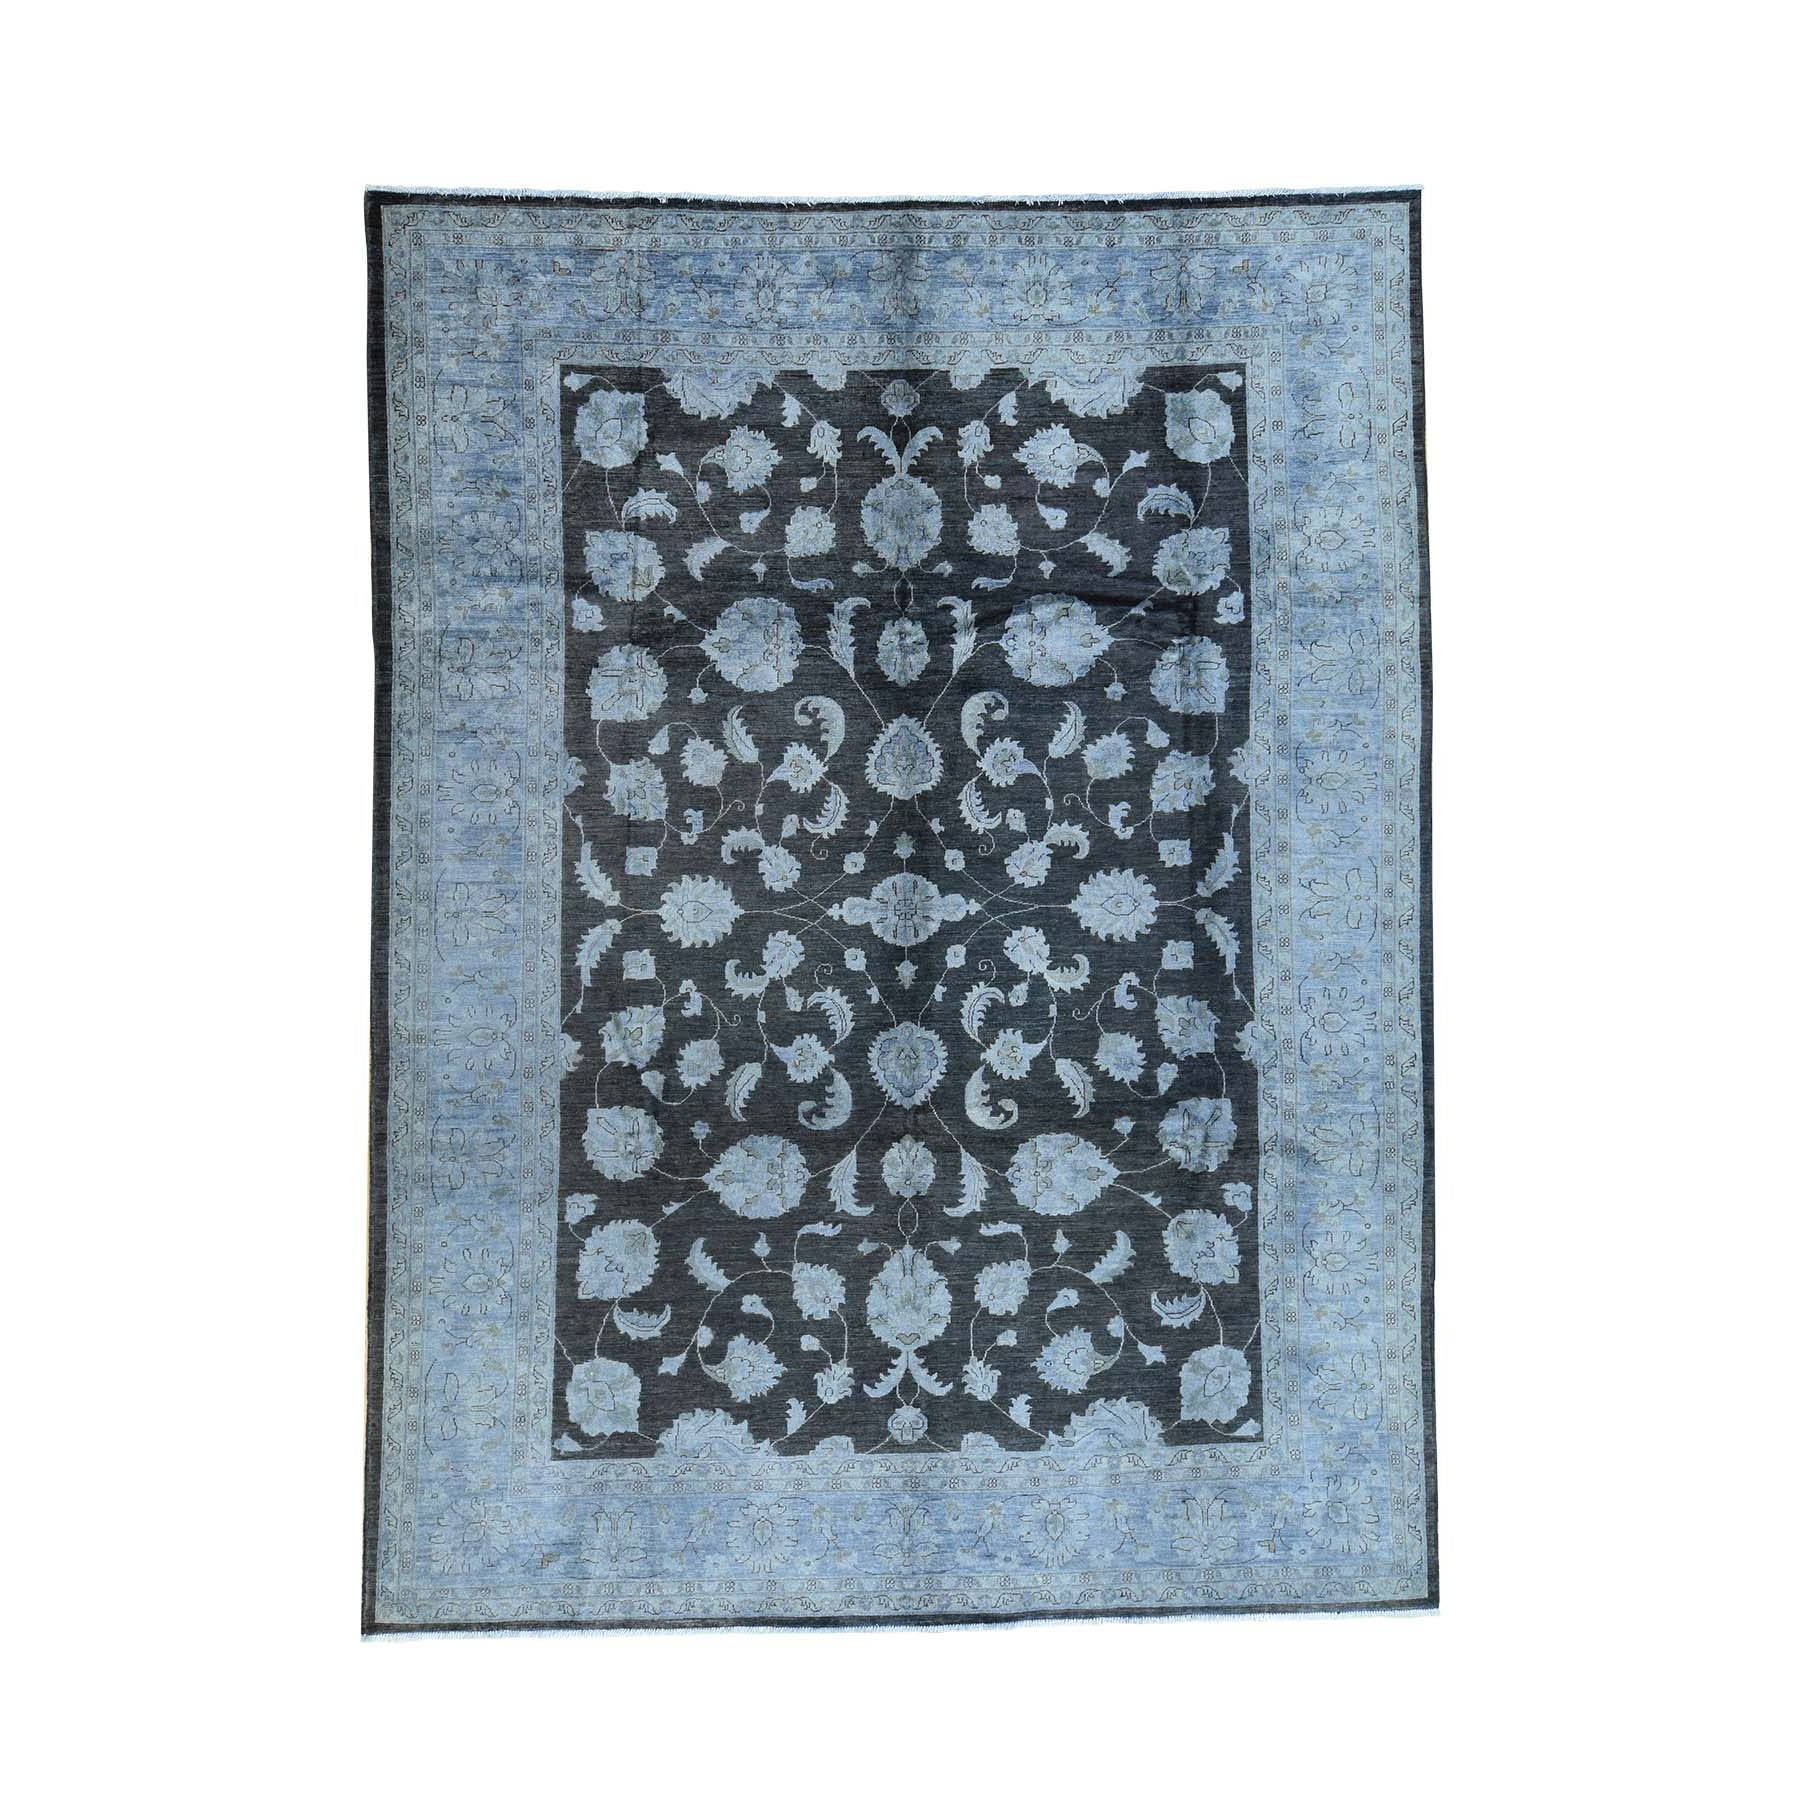 "Handmade Overdyed & Vintage Rectangle Rug > Design# SH31965 > Size: 9'-0"" x 12'-0"" [ONLINE ONLY]"